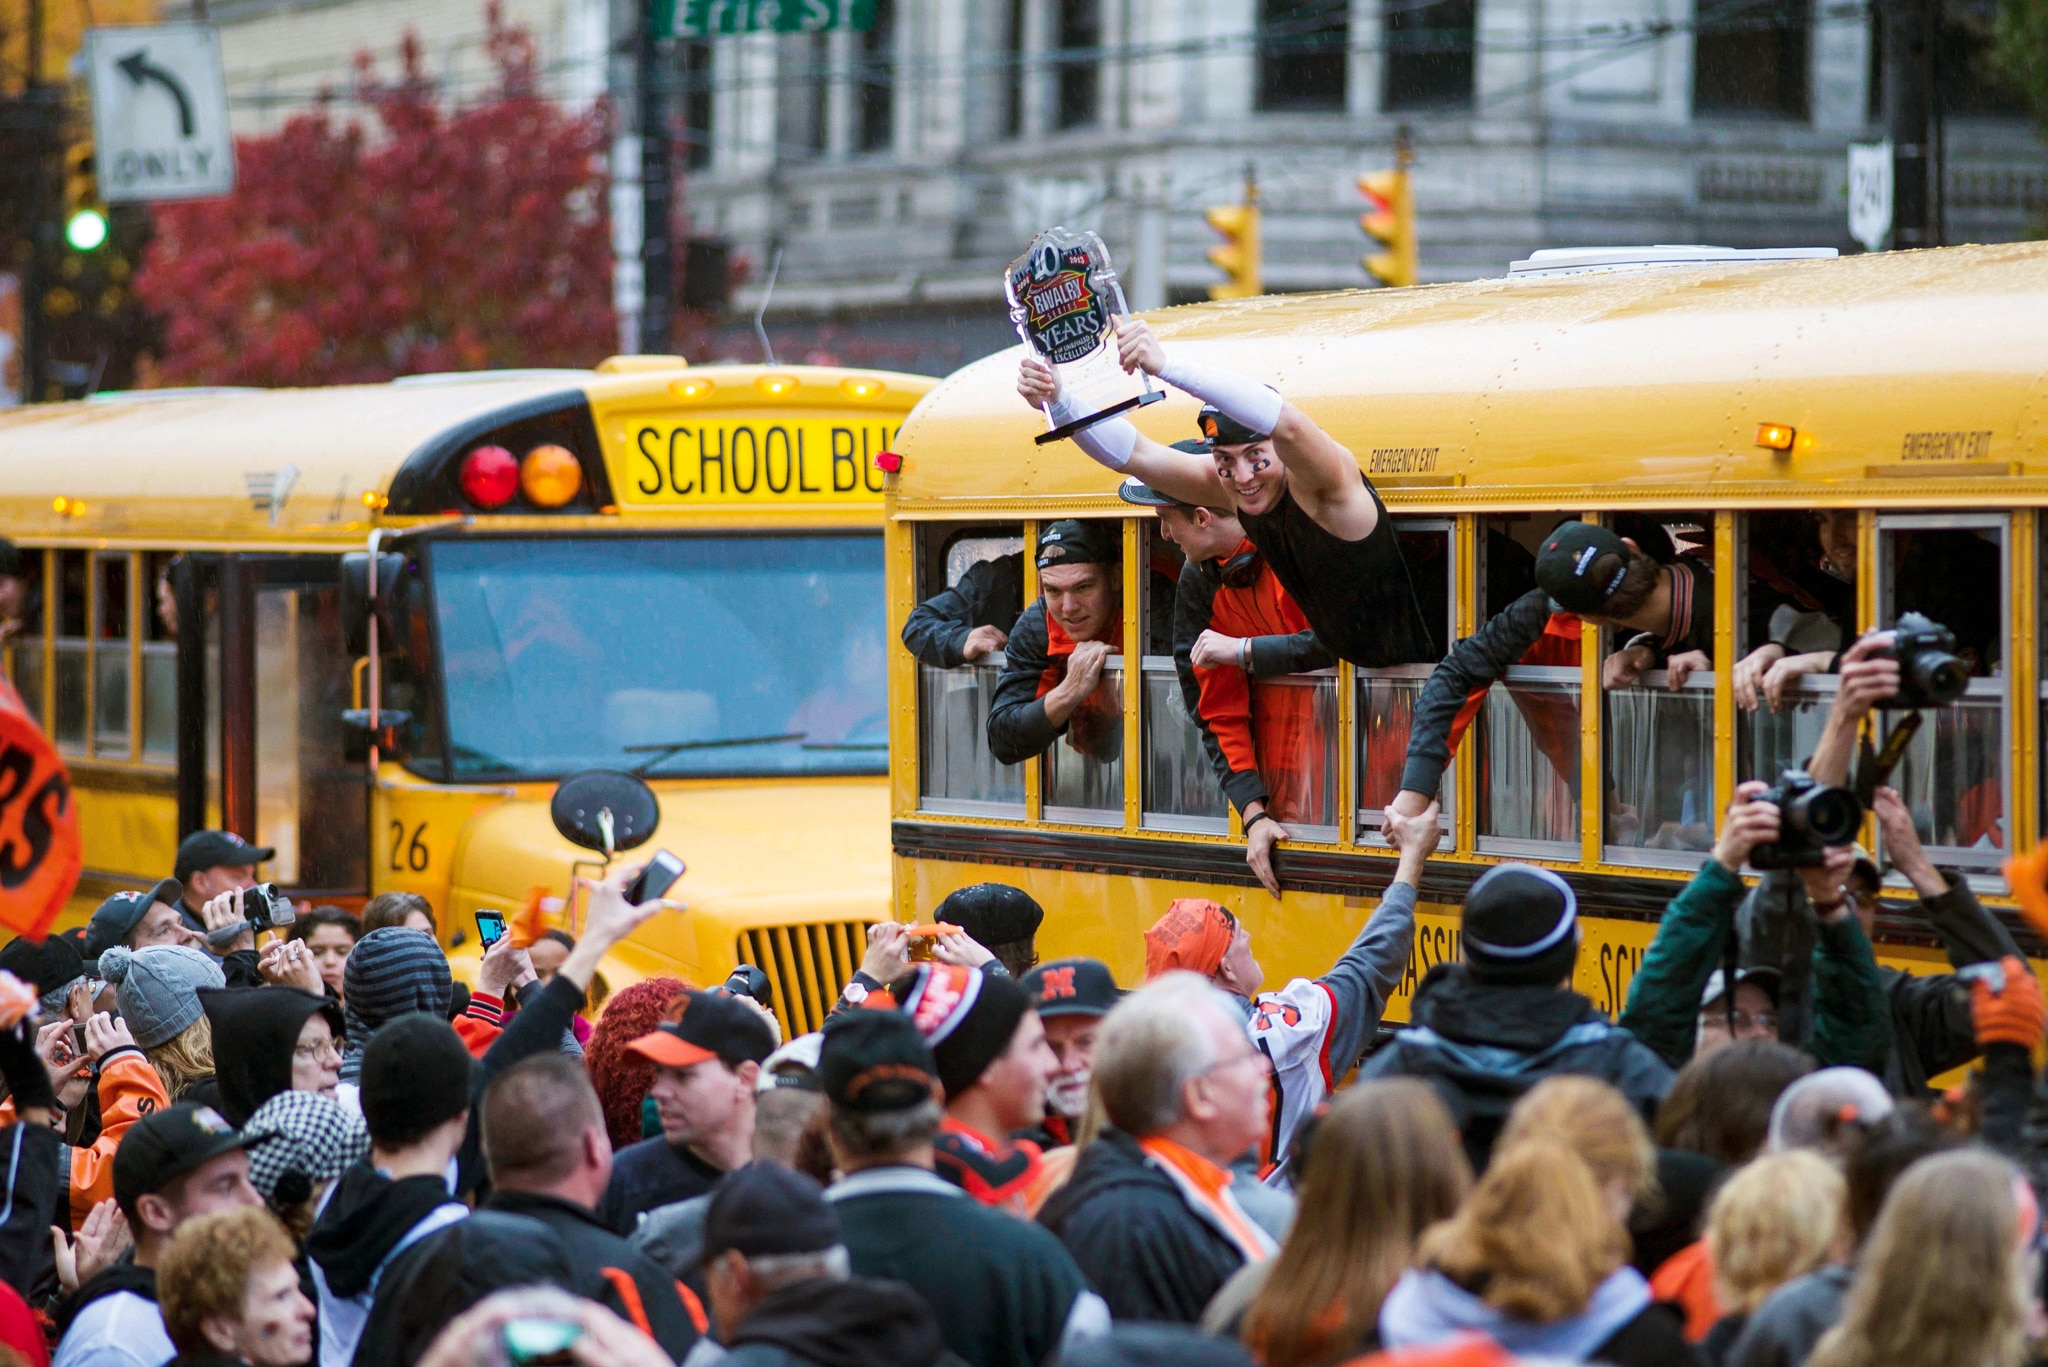 Large crowd around two school buses with people hanging out the windows (© Jenna Watson/Tiger Legacy/Daylight Books)